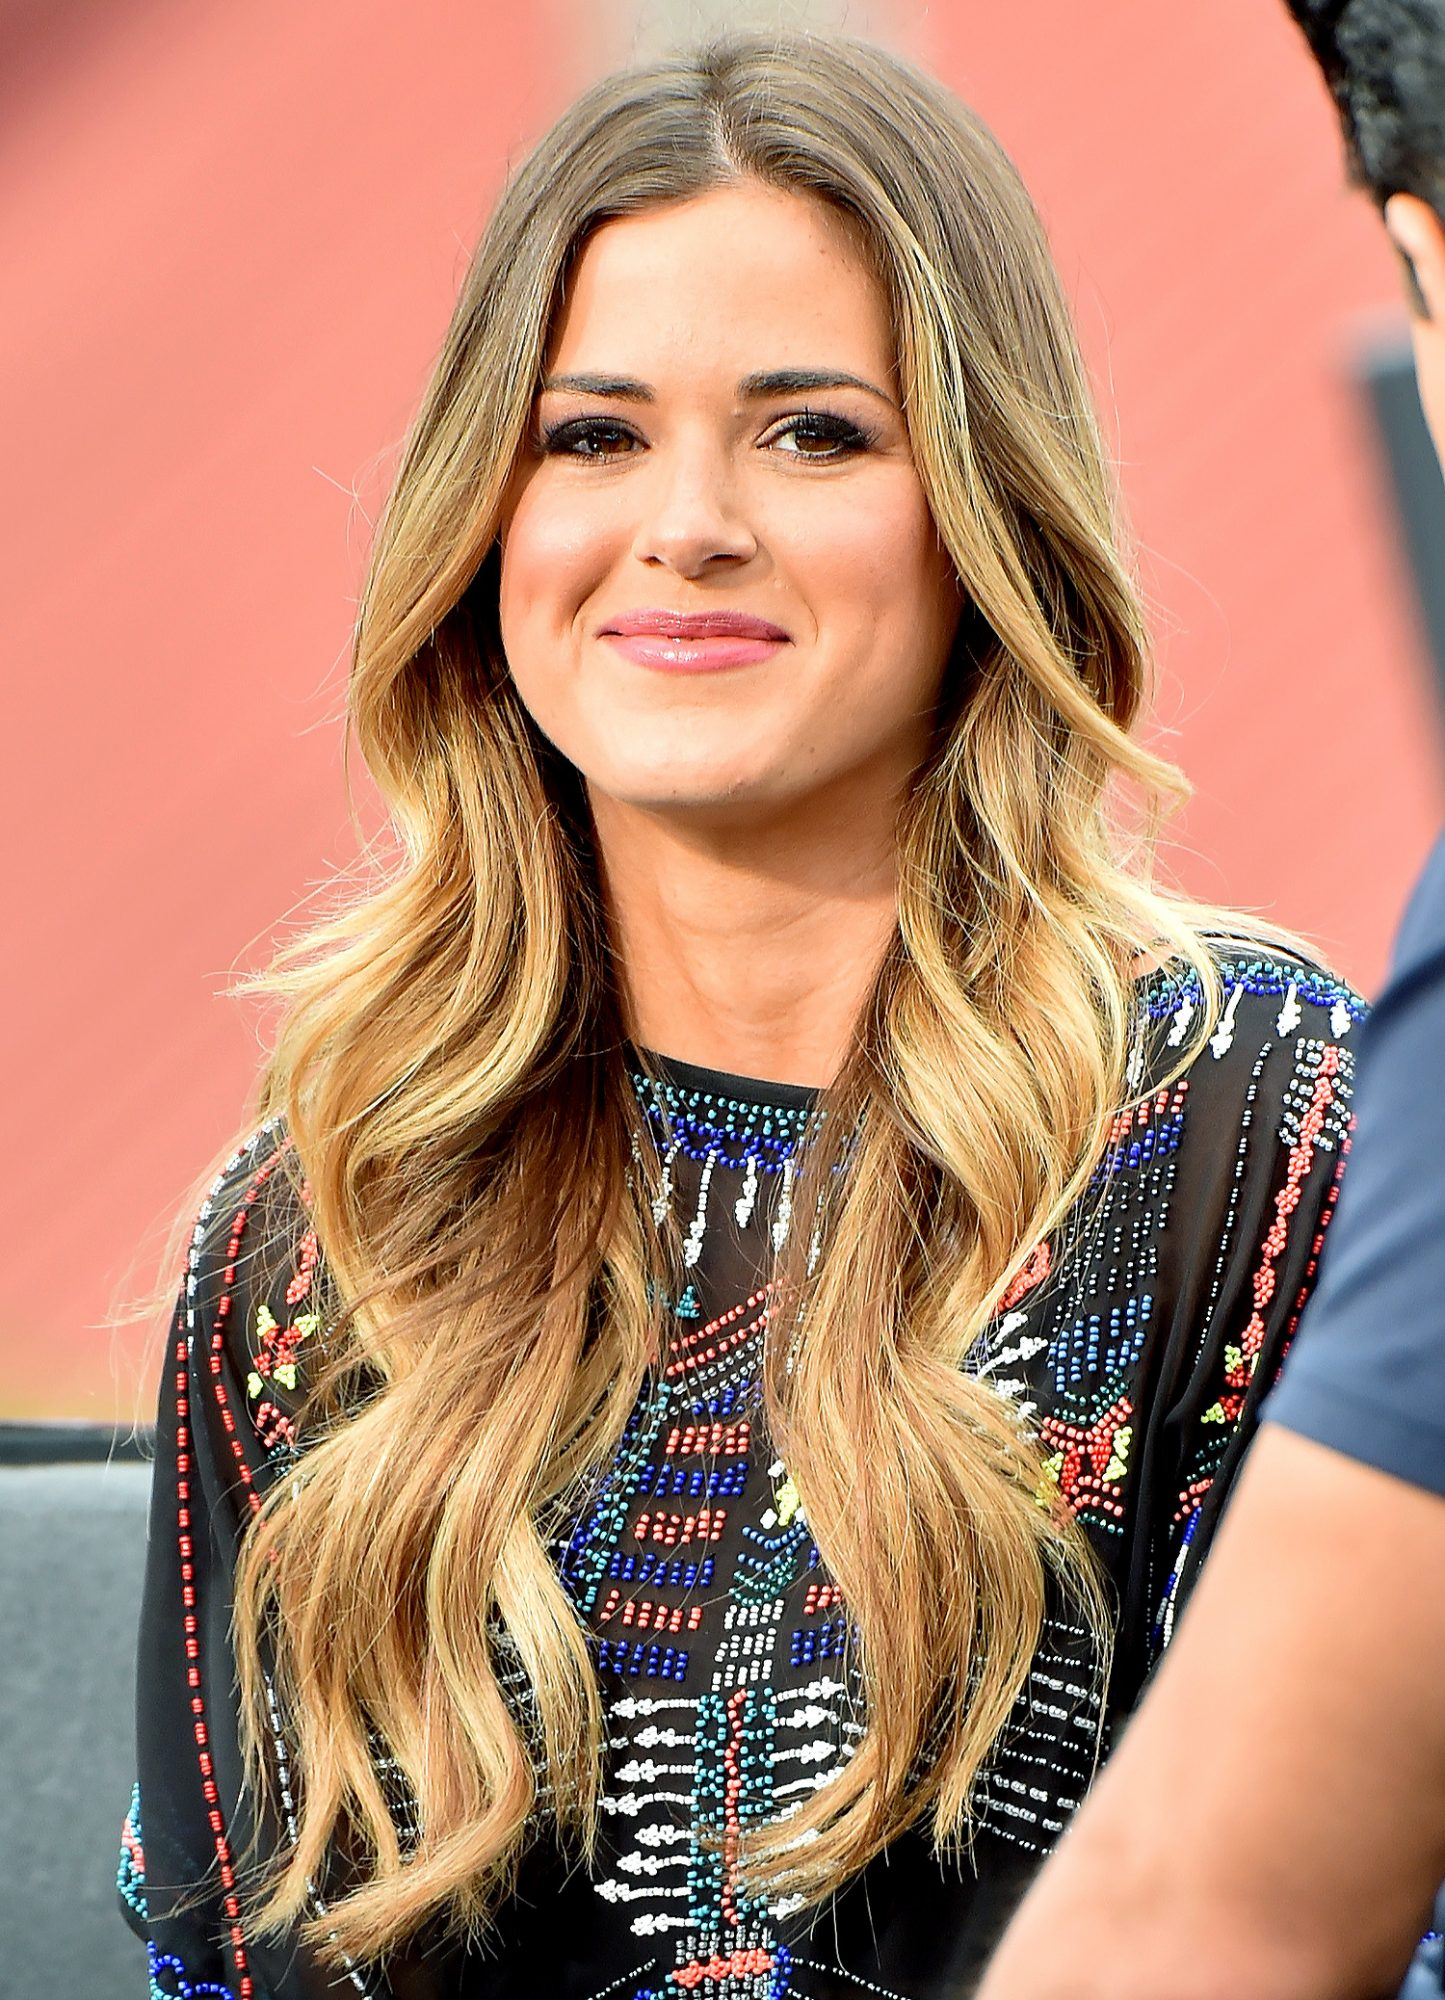 the new bachelorette Jojo Fletcher makes an appearance in hollywood